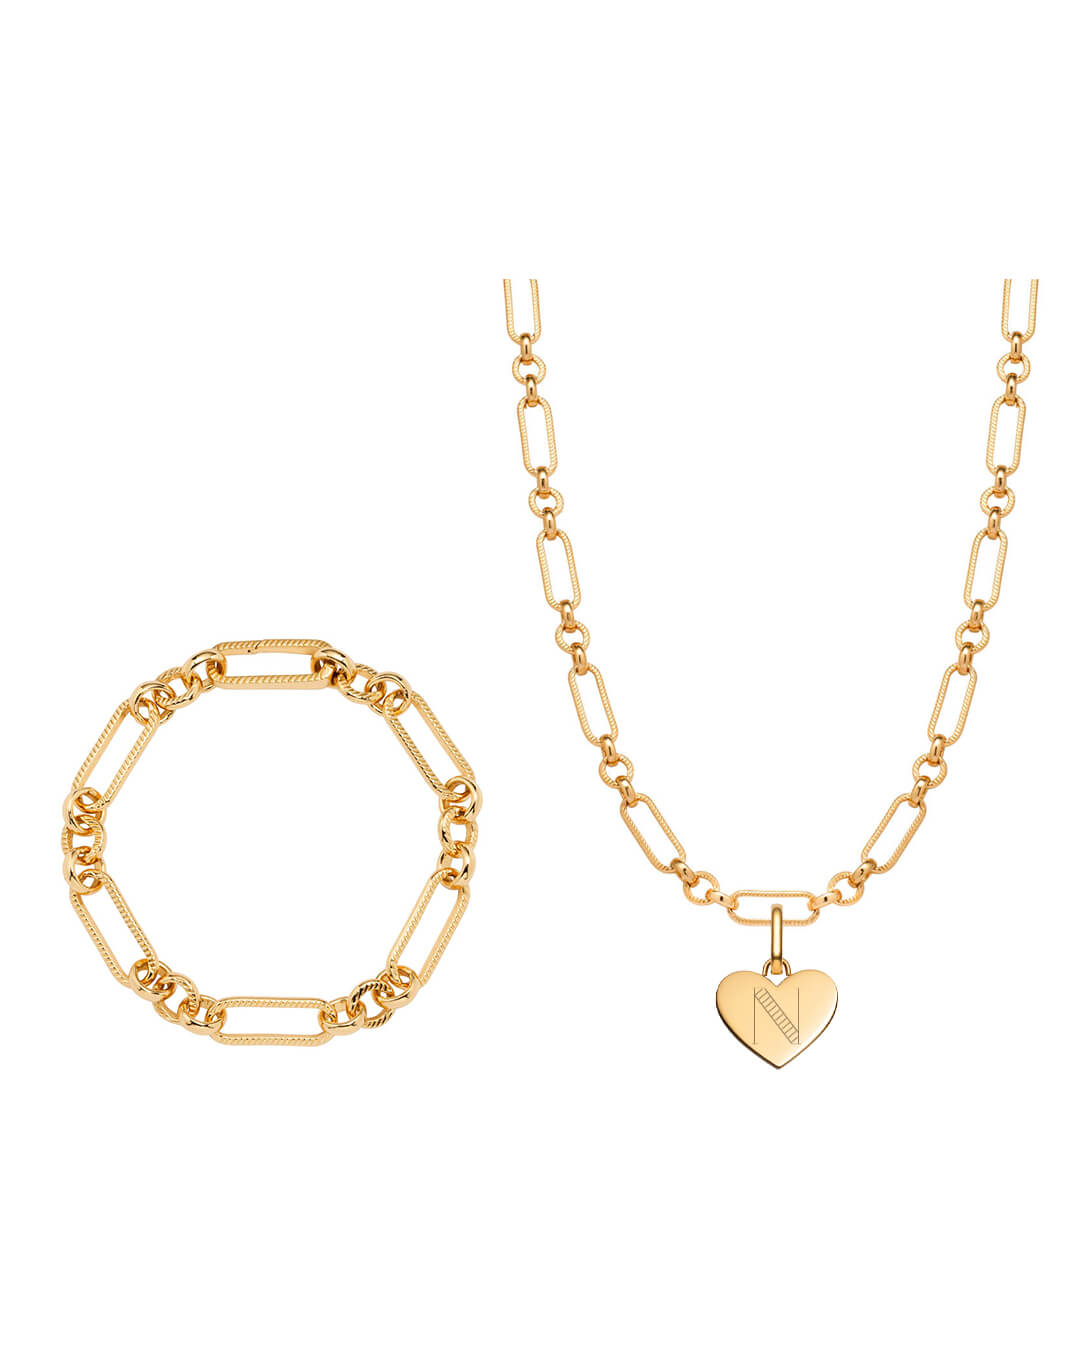 Heart Figaro Chain Necklace & Bracelet Gift Set (Gold)